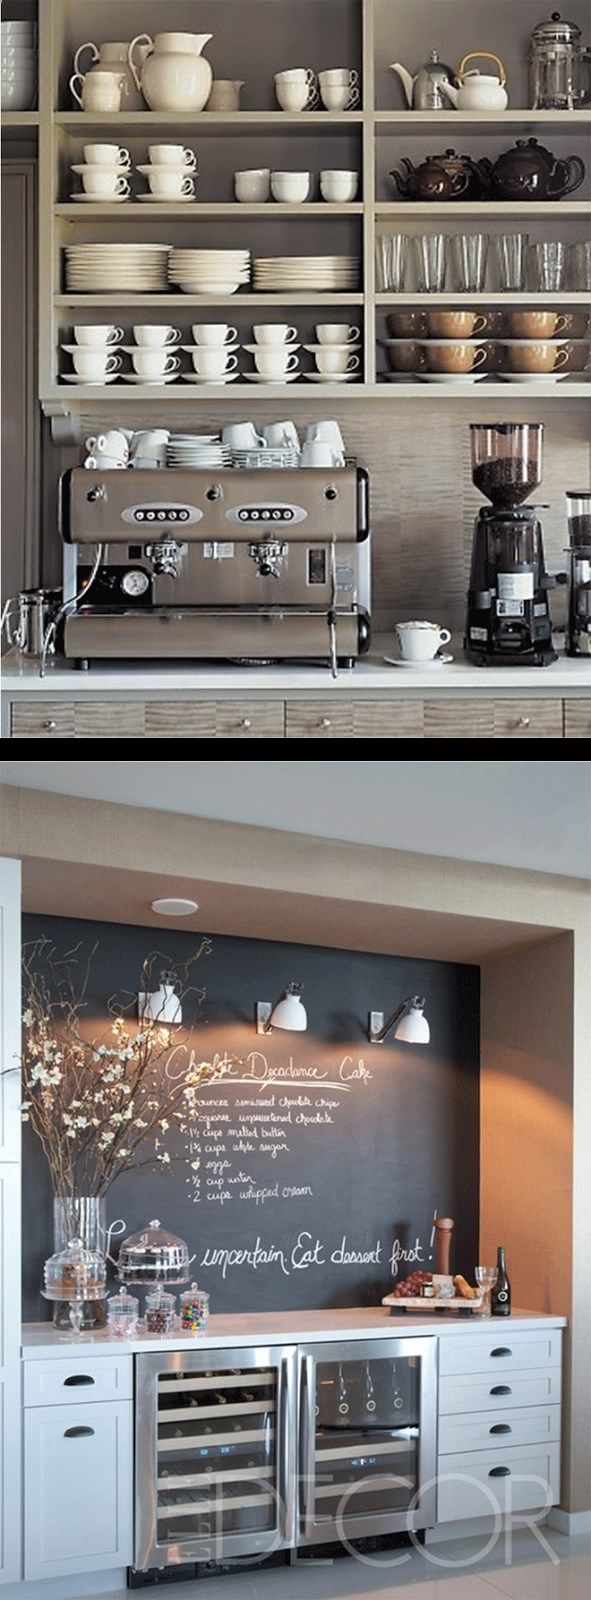 Wine Fridge - Some day I truly want a commercial espresso machine and grinder in my home...just seems awesome to me!